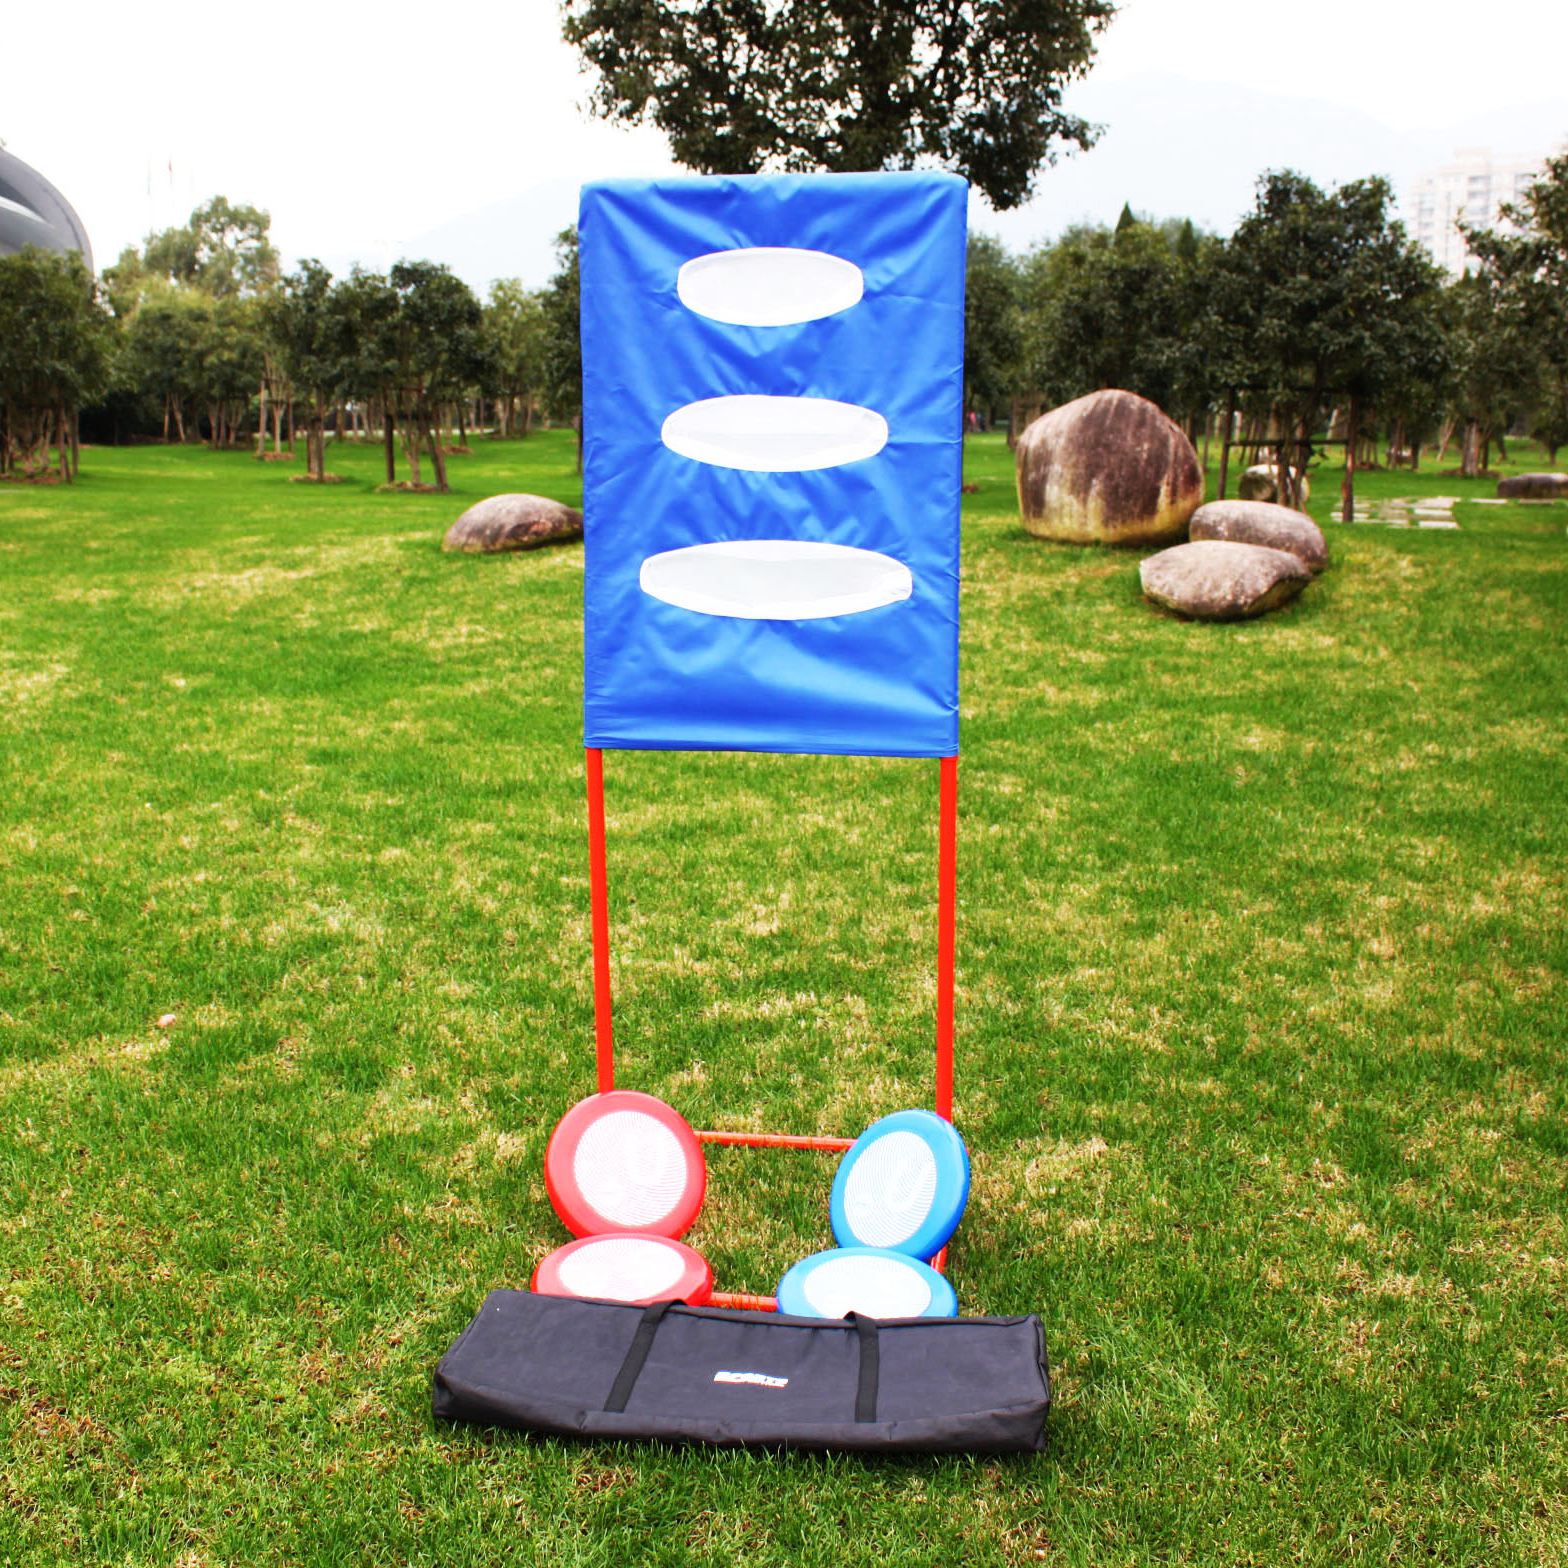 Sports Festival Disc Golf Toss Game by Zhejiang Phelps Lighting Technololgy Co., Ltd.